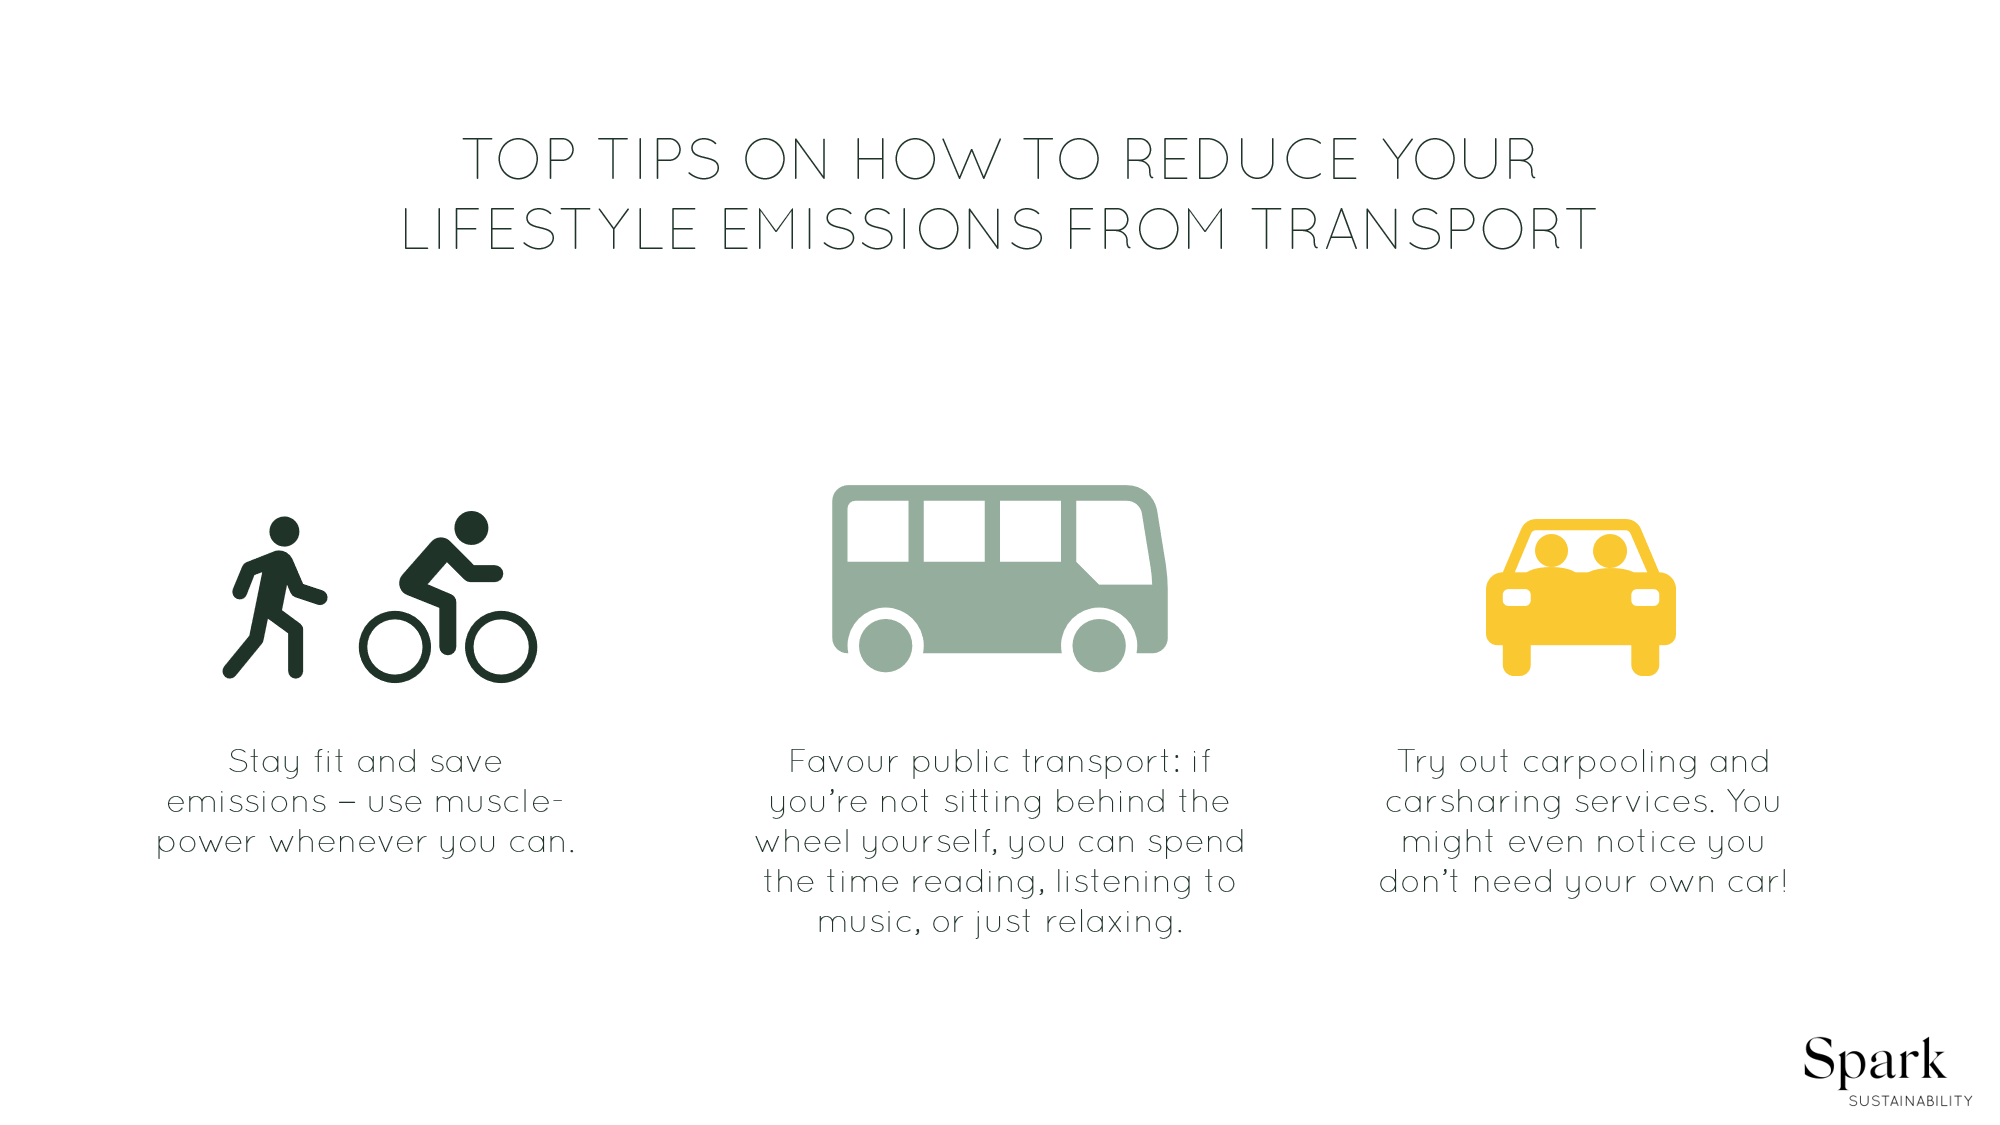 Sustainable transport – top 3 tips on how to reduce lifestyle emissions from transport.